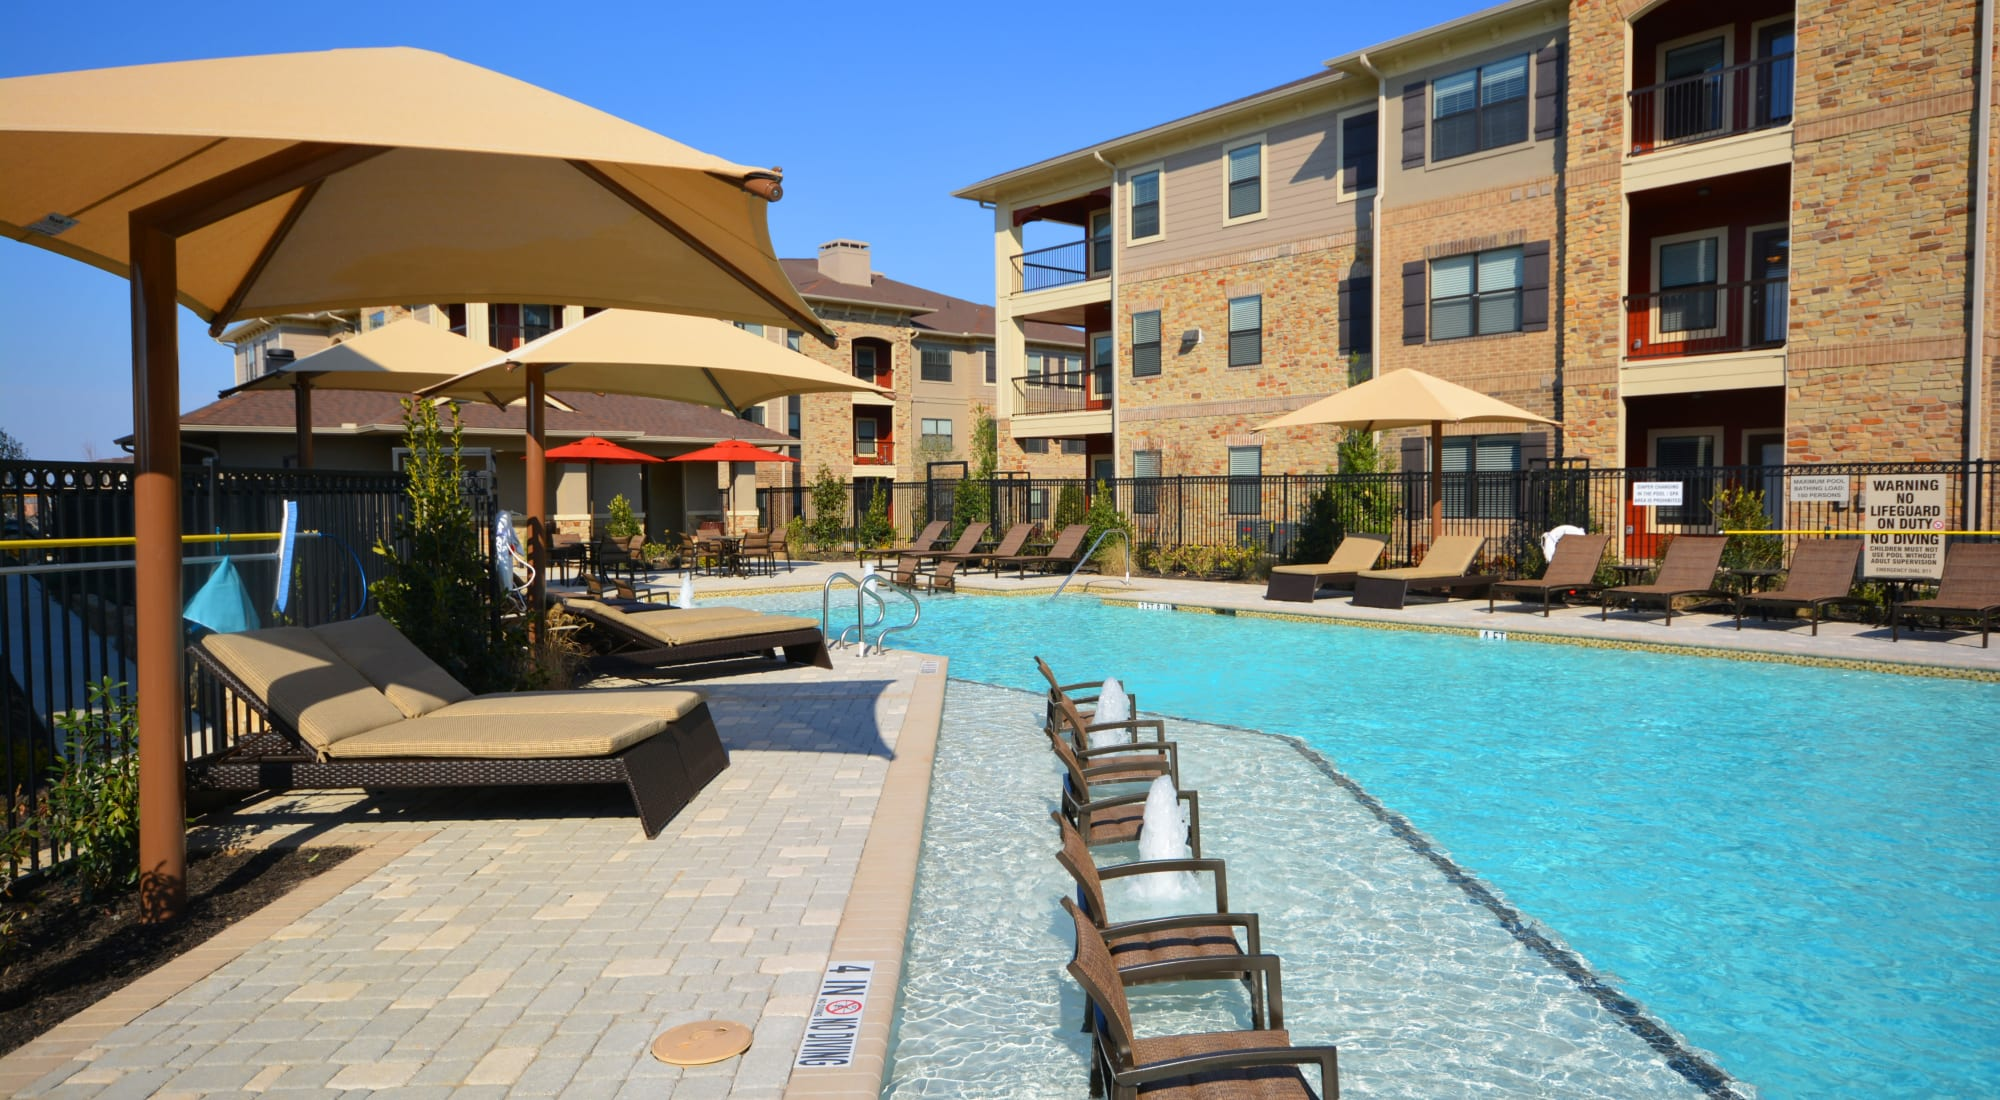 The Sovereign apartments in Fort Worth, Texas